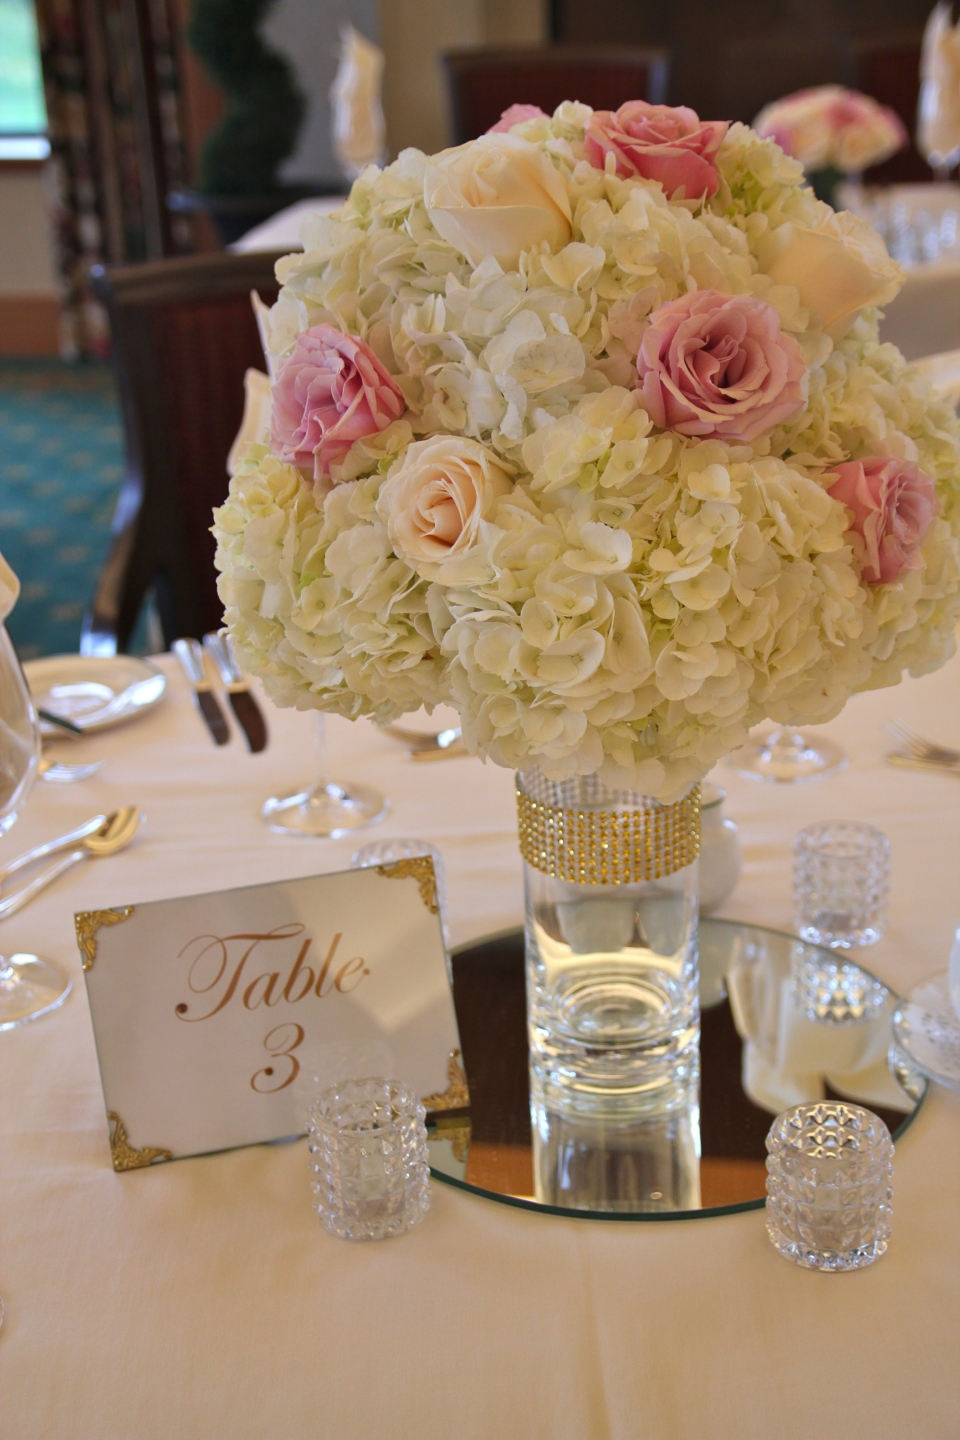 Ivory hydrangea globes with pink and ivory roses